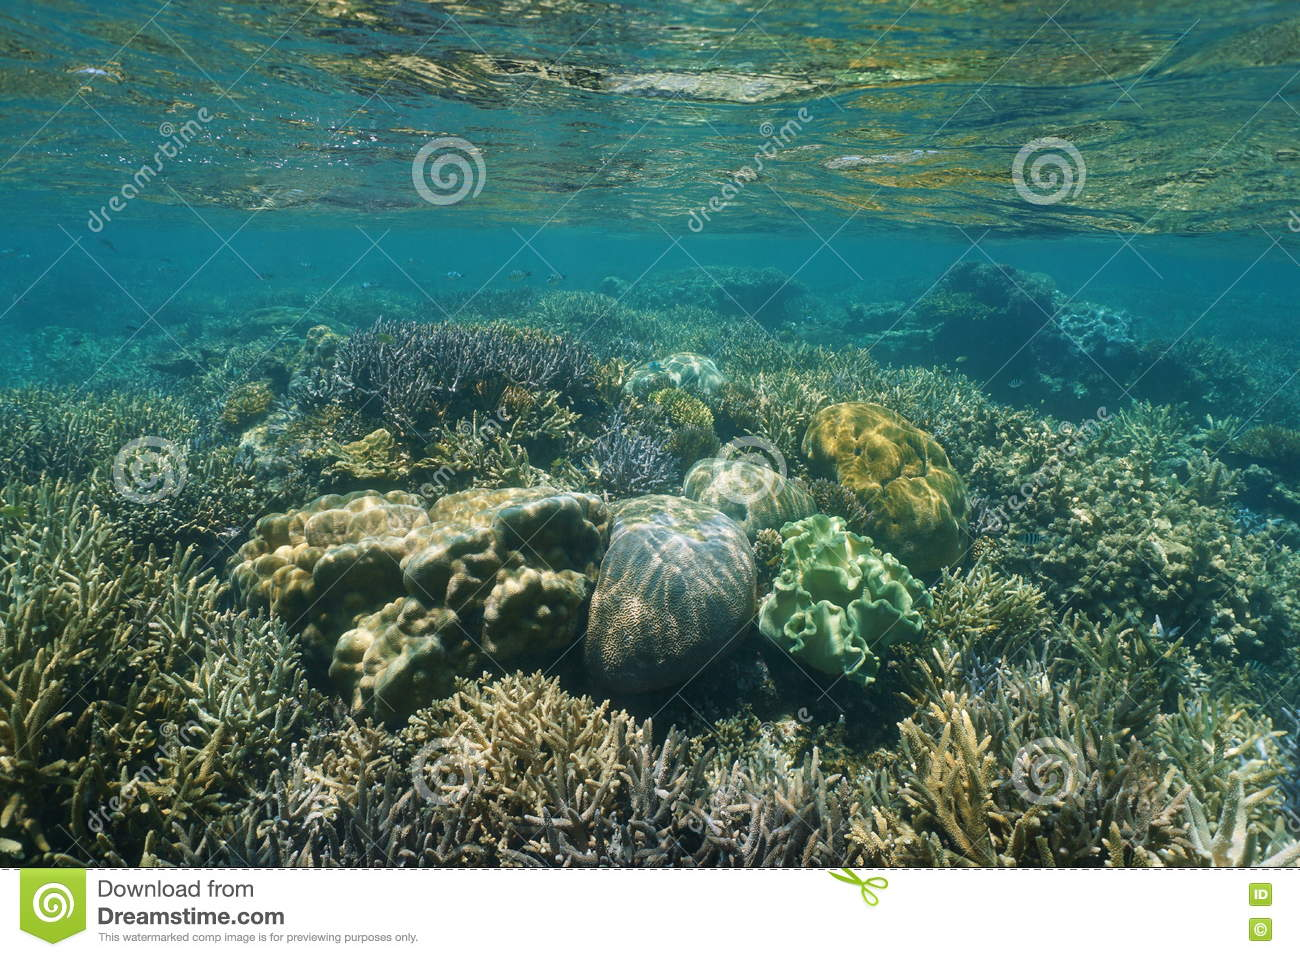 Shallow reef with corals underwater Pacific ocean